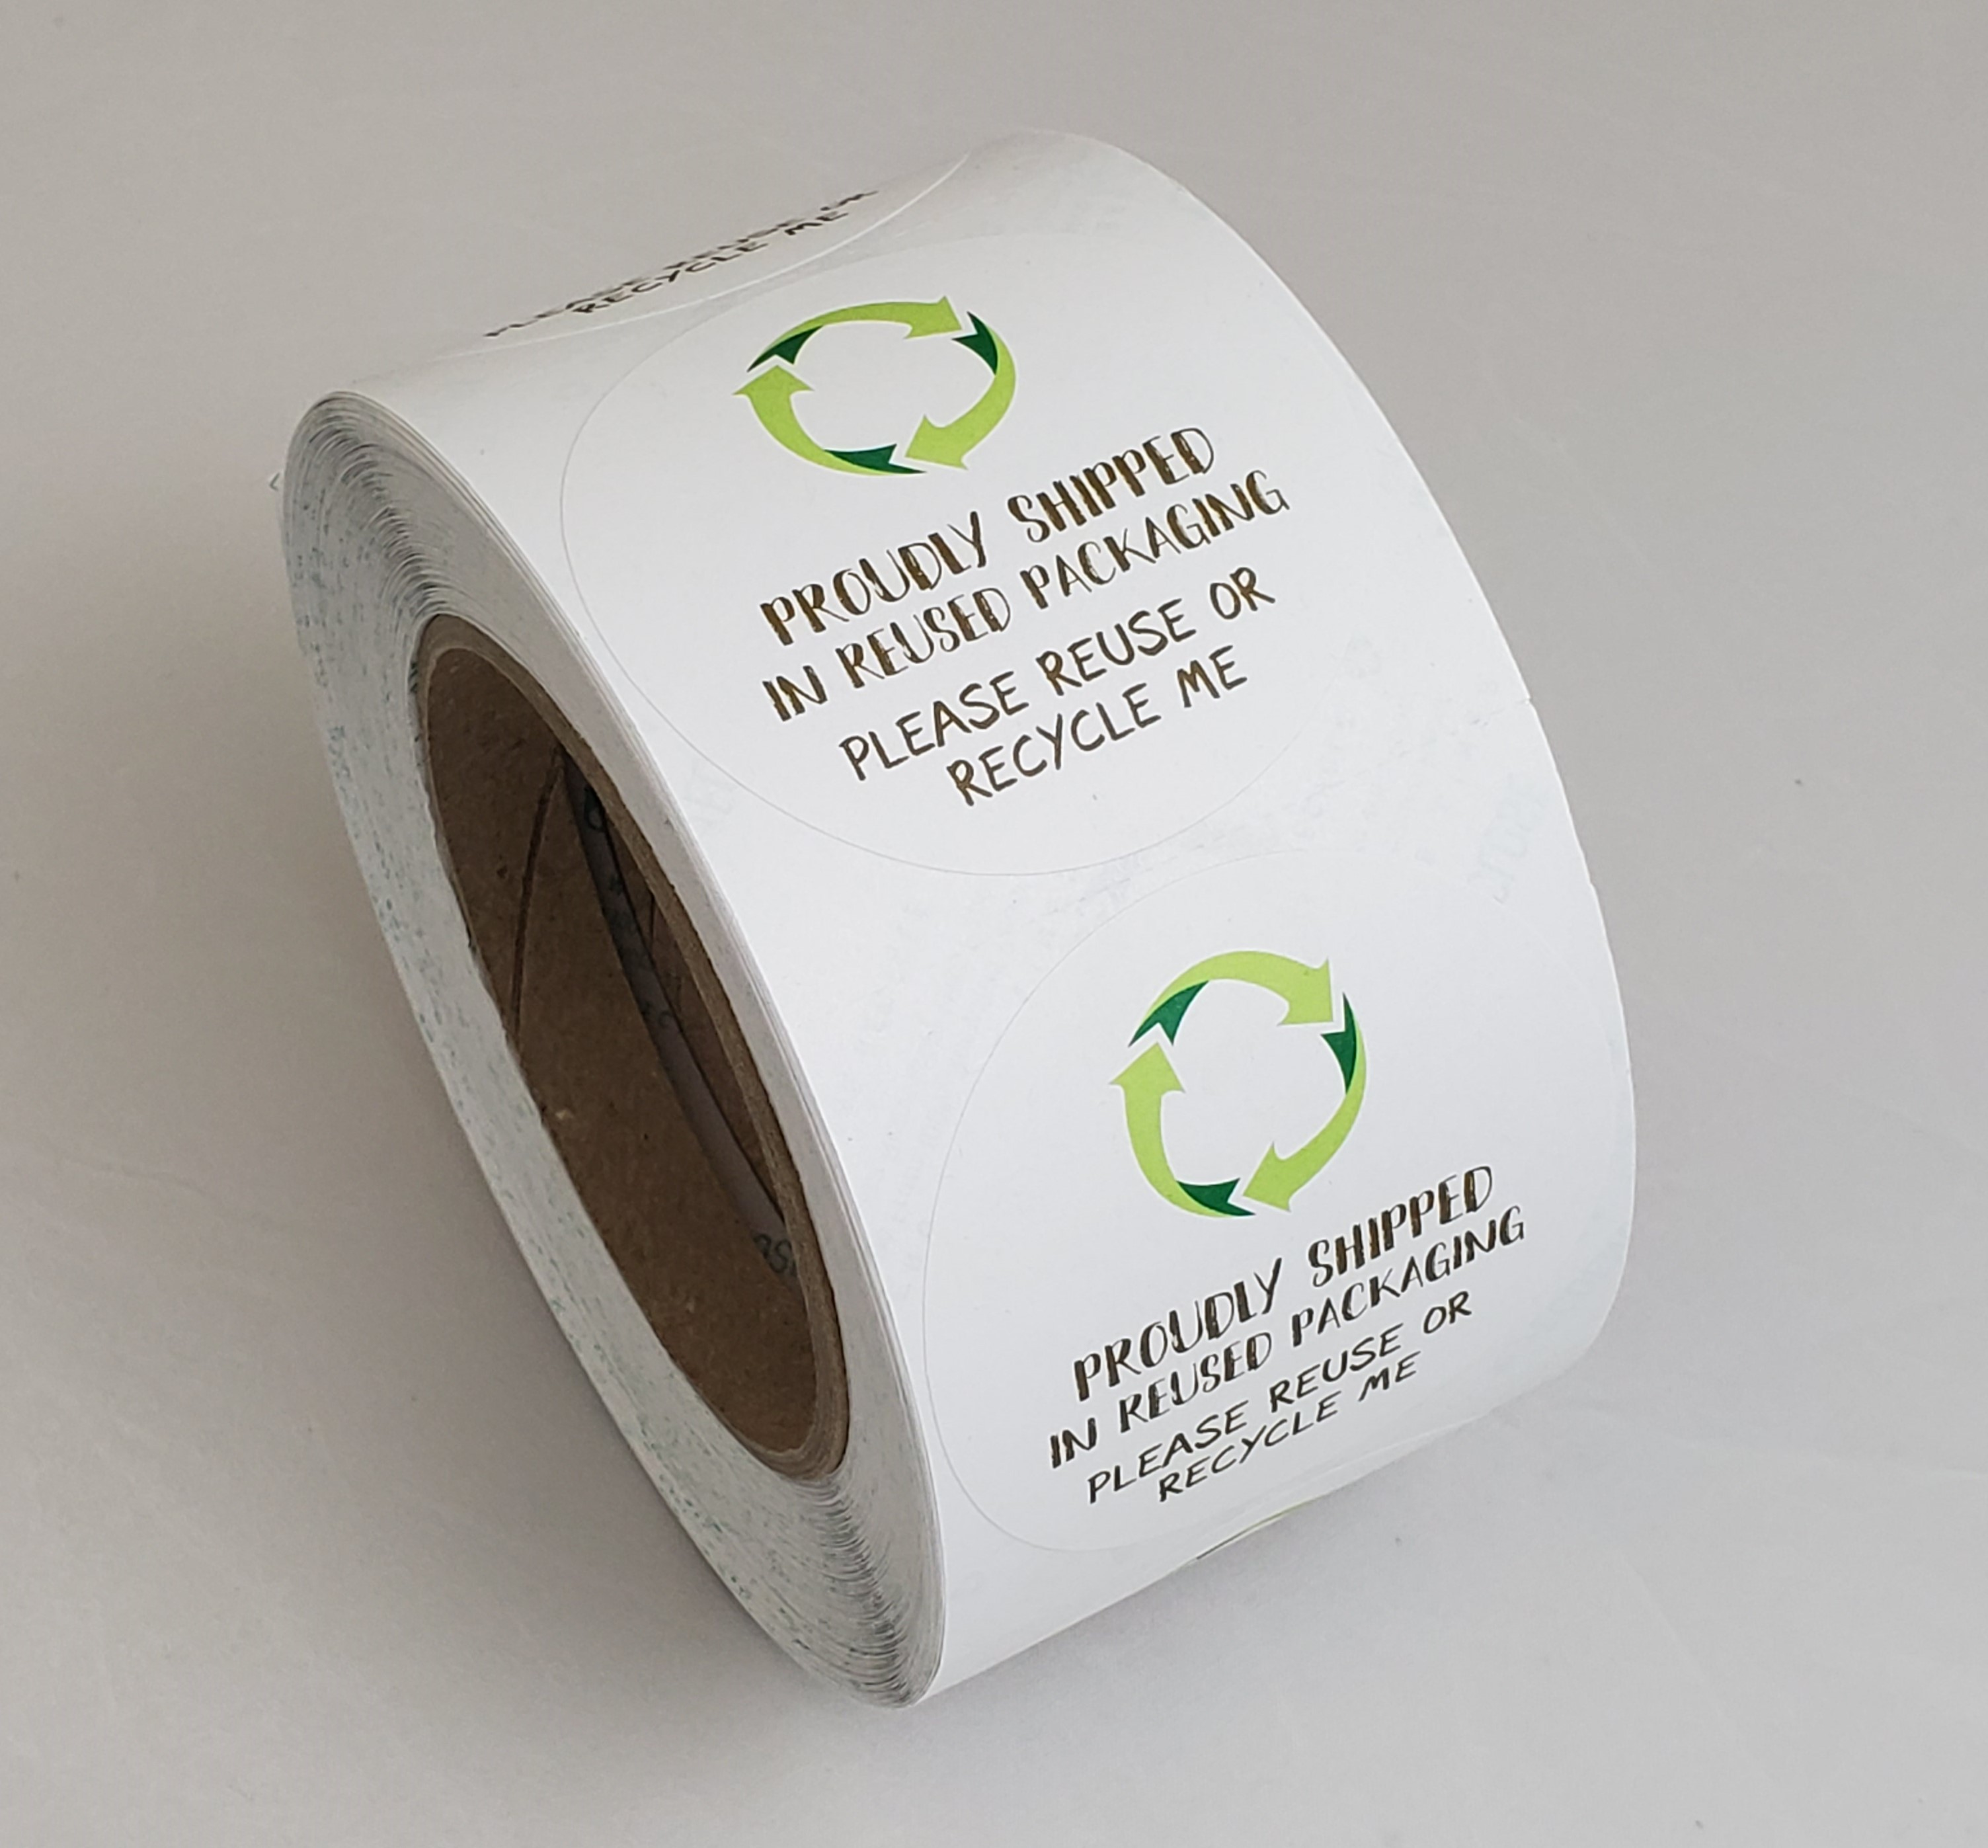 Proudly shipped paper roll jpg